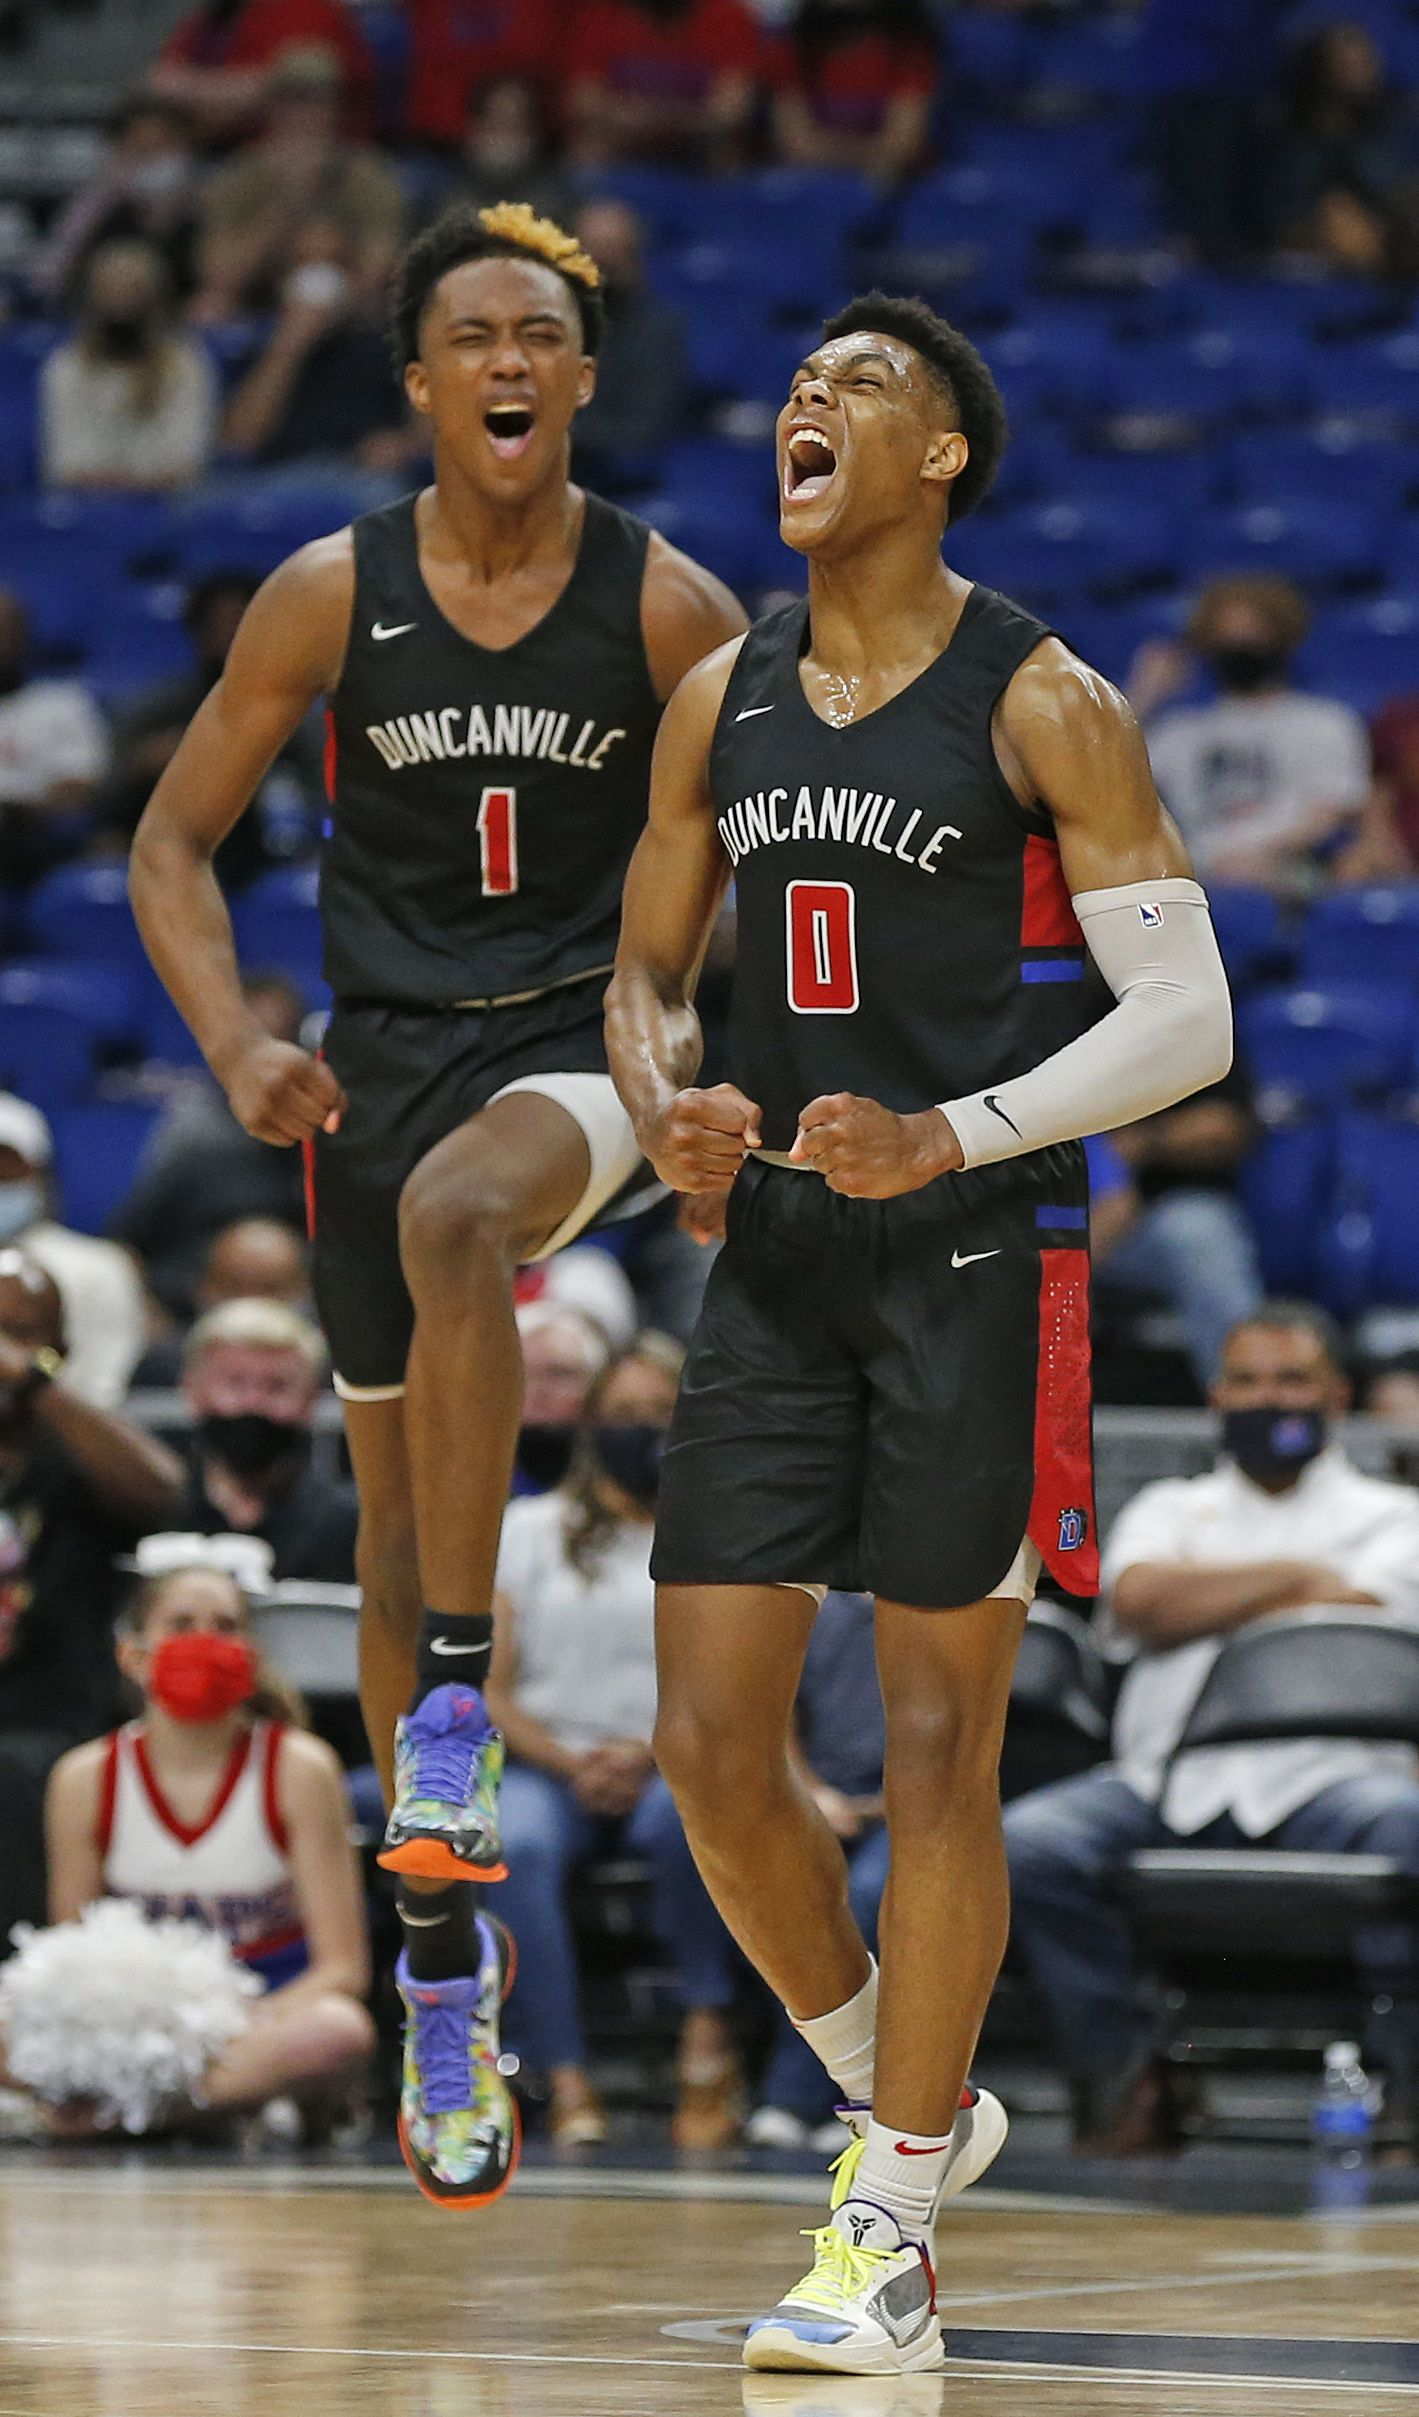 Duncanville Zhuric Phelps #0 and Duncanville Ron Holland #1 begin to celebrate in closing minute. UIL boys Class 6A basketball state championship game between Duncanville and Austin Westlake on Saturday, March 13, 2021 at the Alamodome.